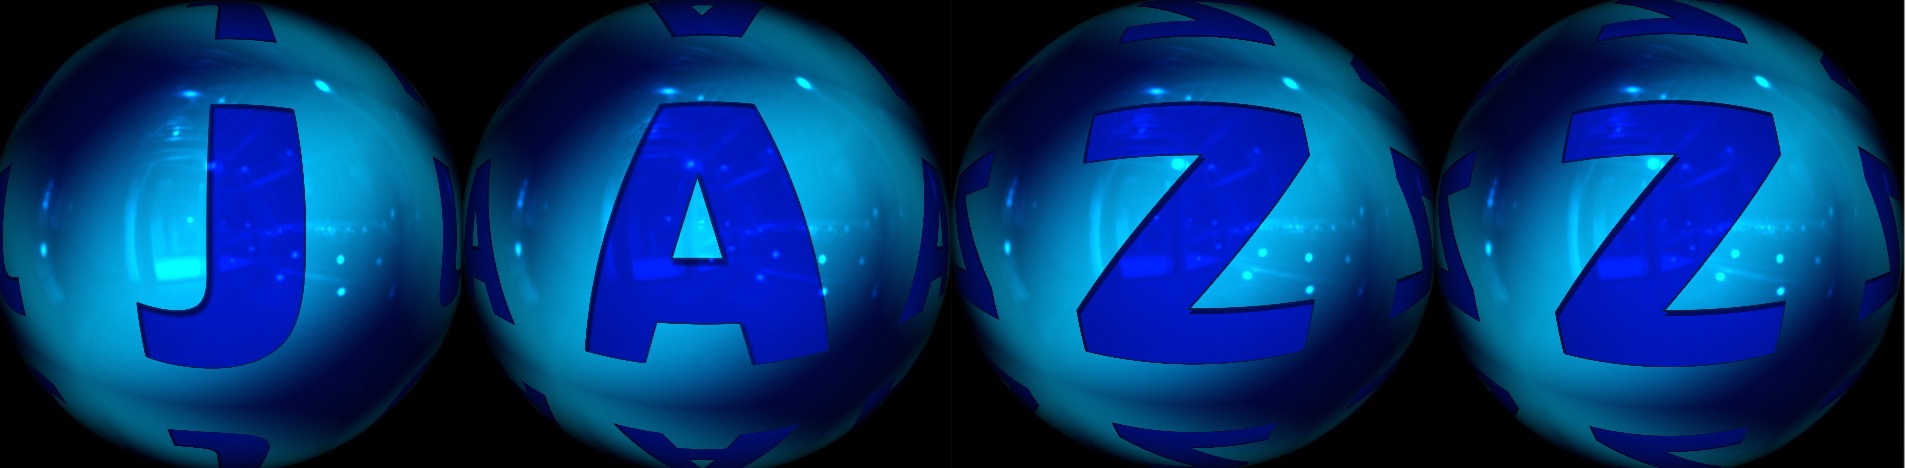 Blue jazz balls.jpeg